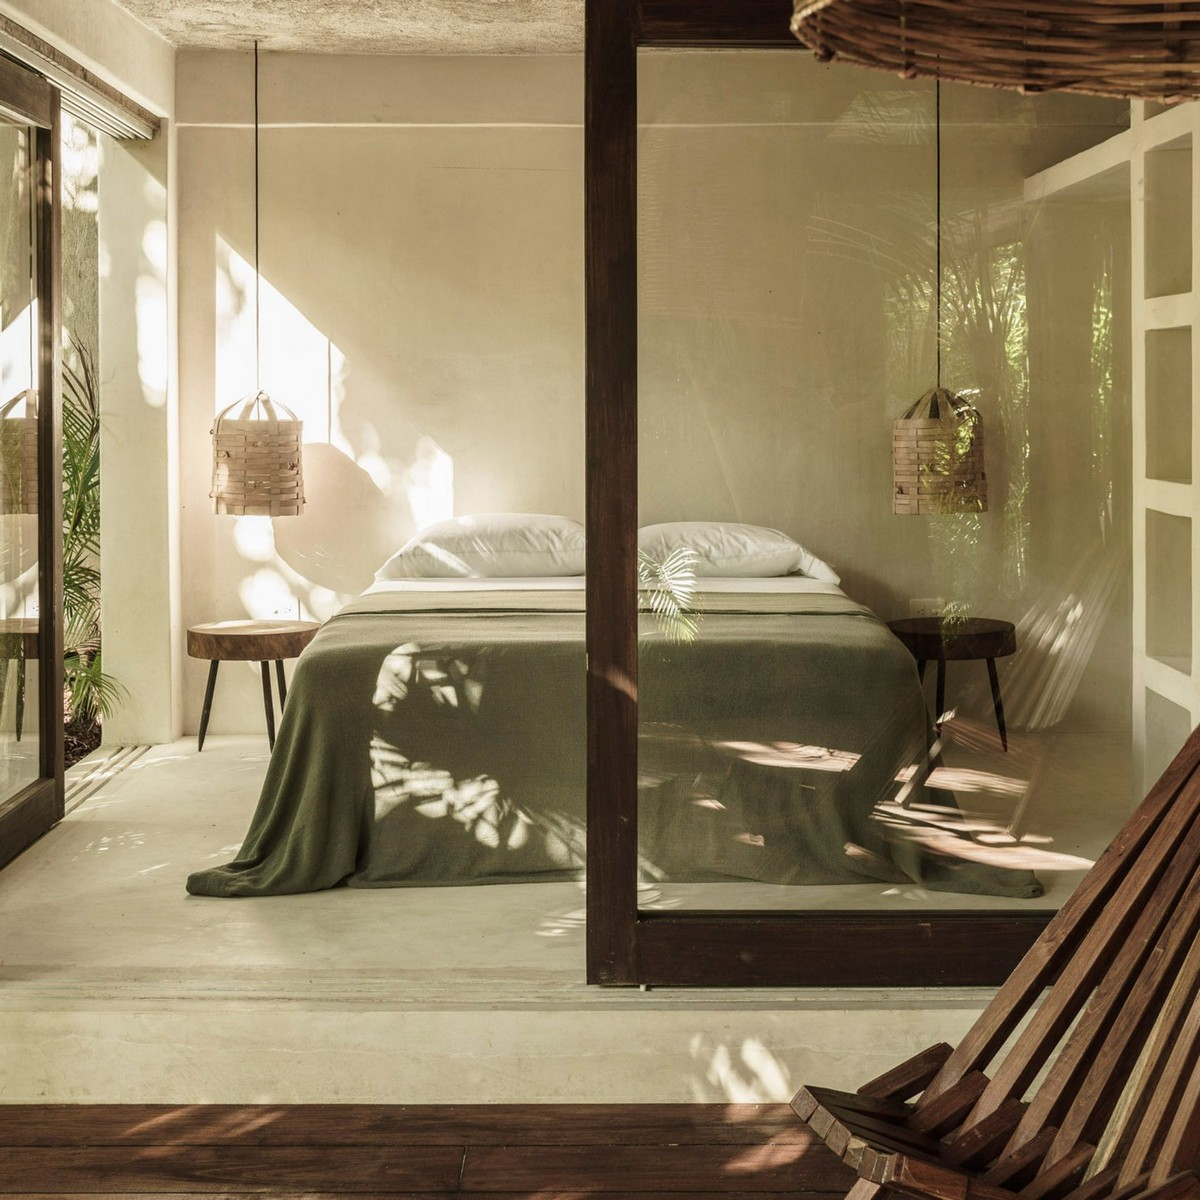 Top 10 Best Hotels of 2017: A Dezeen Selection | Thinking about next years vacation? We show you some awesome locations. #tophotels #hoteldesign #besthotels #luxuryhotels #traveldestinations #centertables best hotels Top 10 Best Hotels of 2017: A Dezeen Selection tulum treehouse colab studio dezeen sq 1704x1704